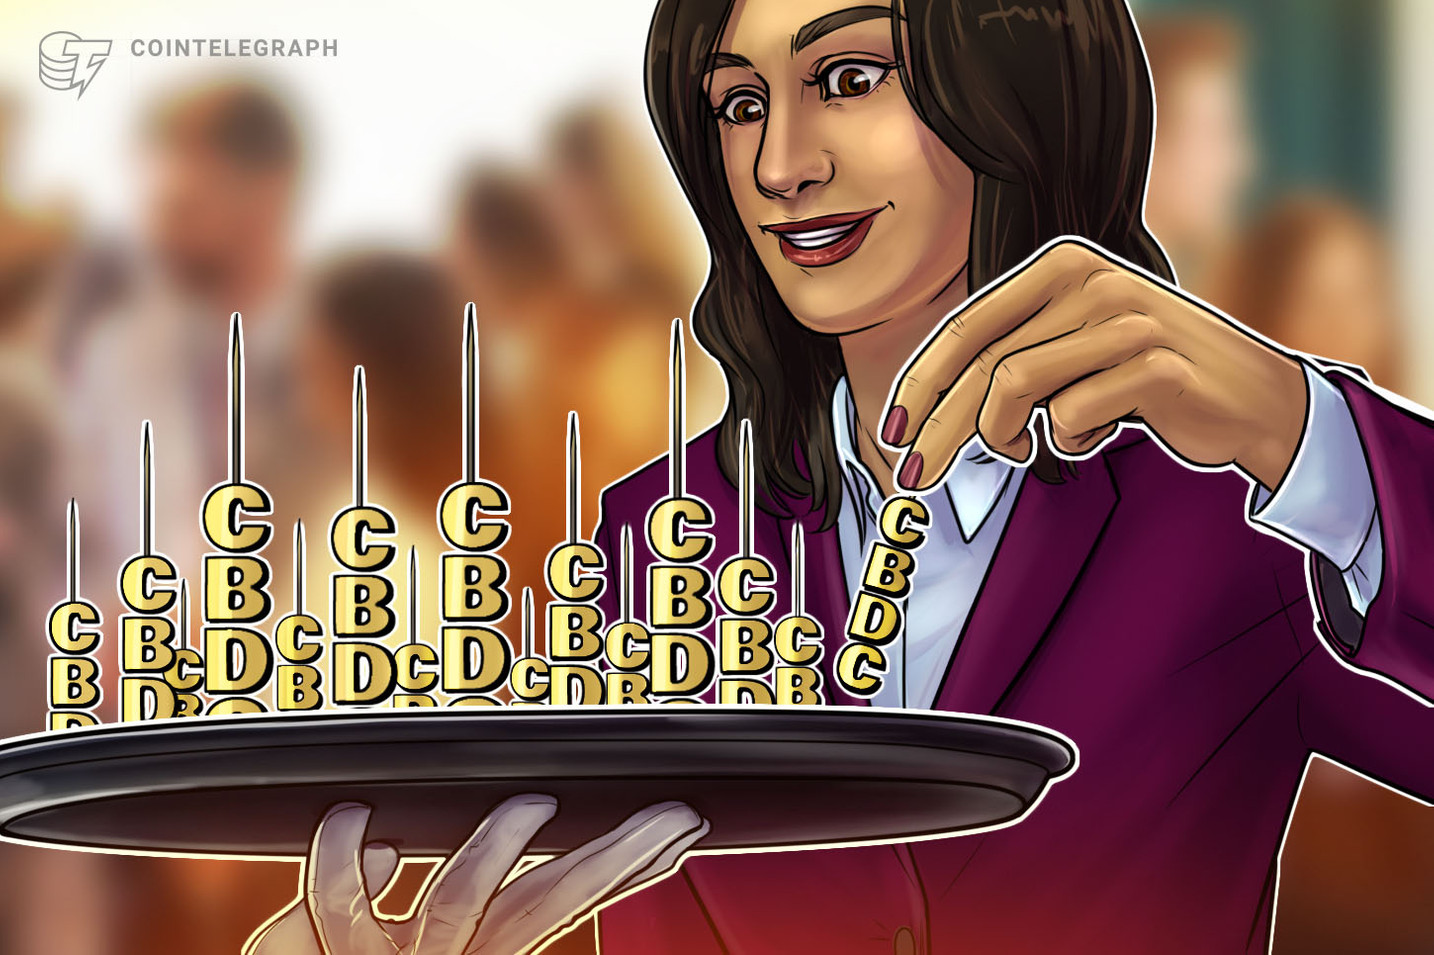 Swiss National Bank and BIS complete digital currency proofs-of-concept